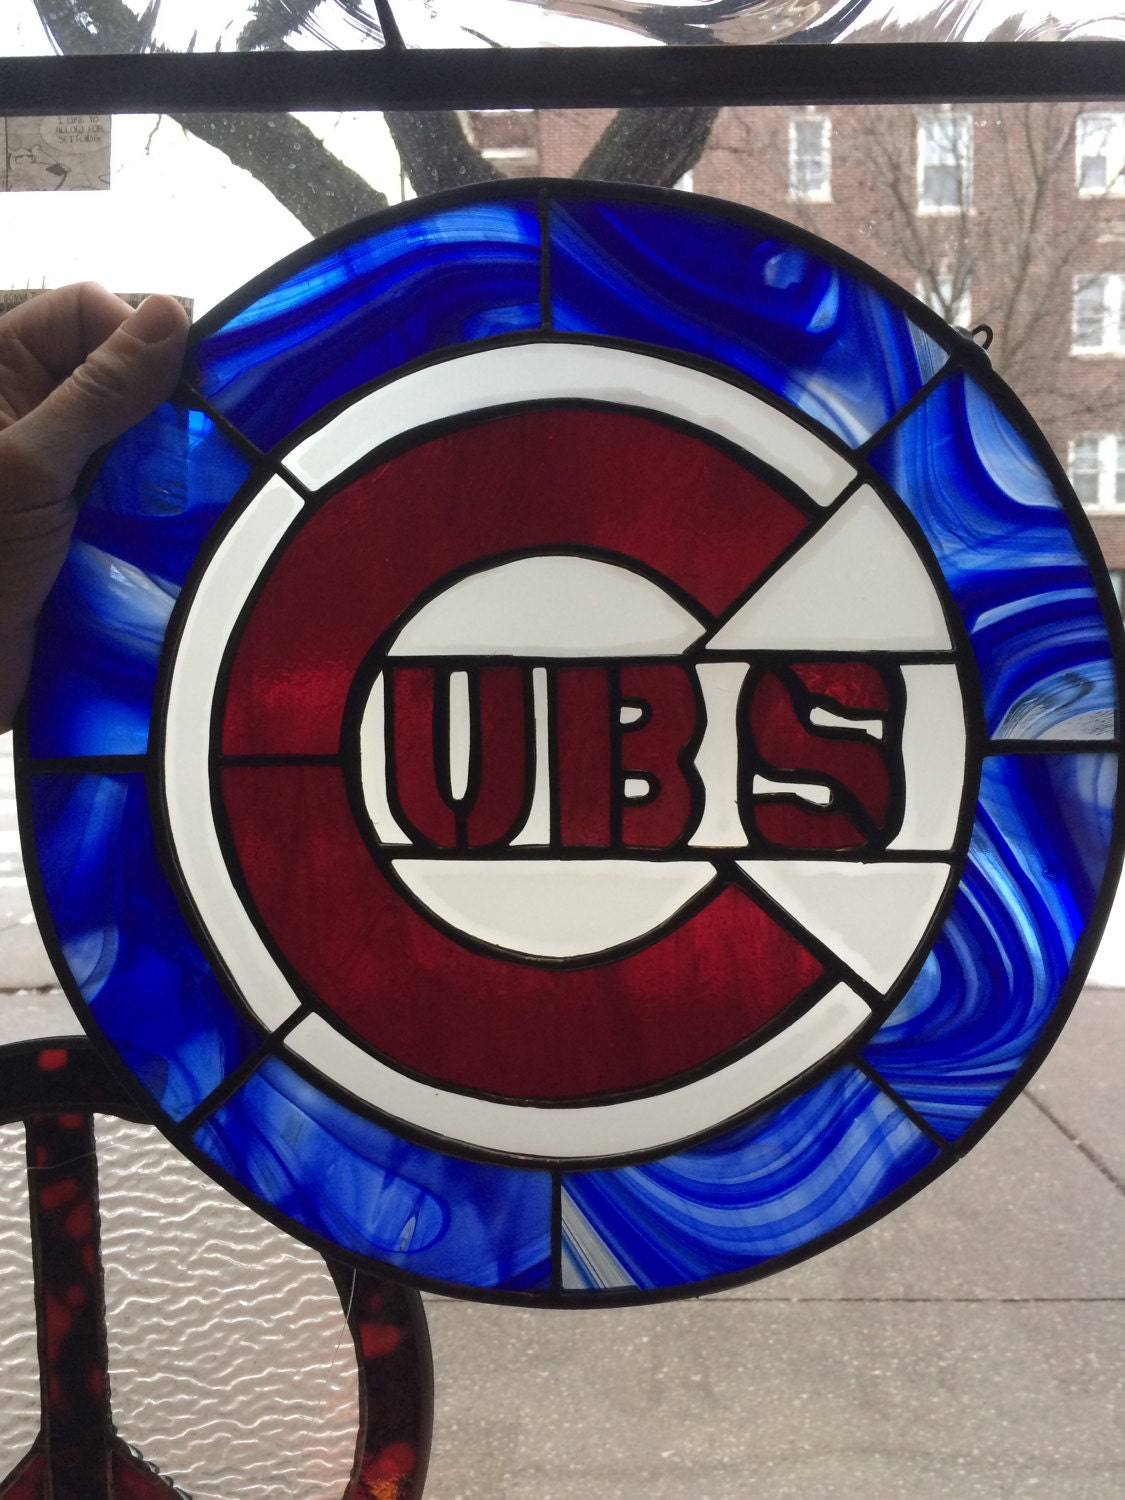 Chicago cubs symbol stained glass details chicago cubs symbol buycottarizona